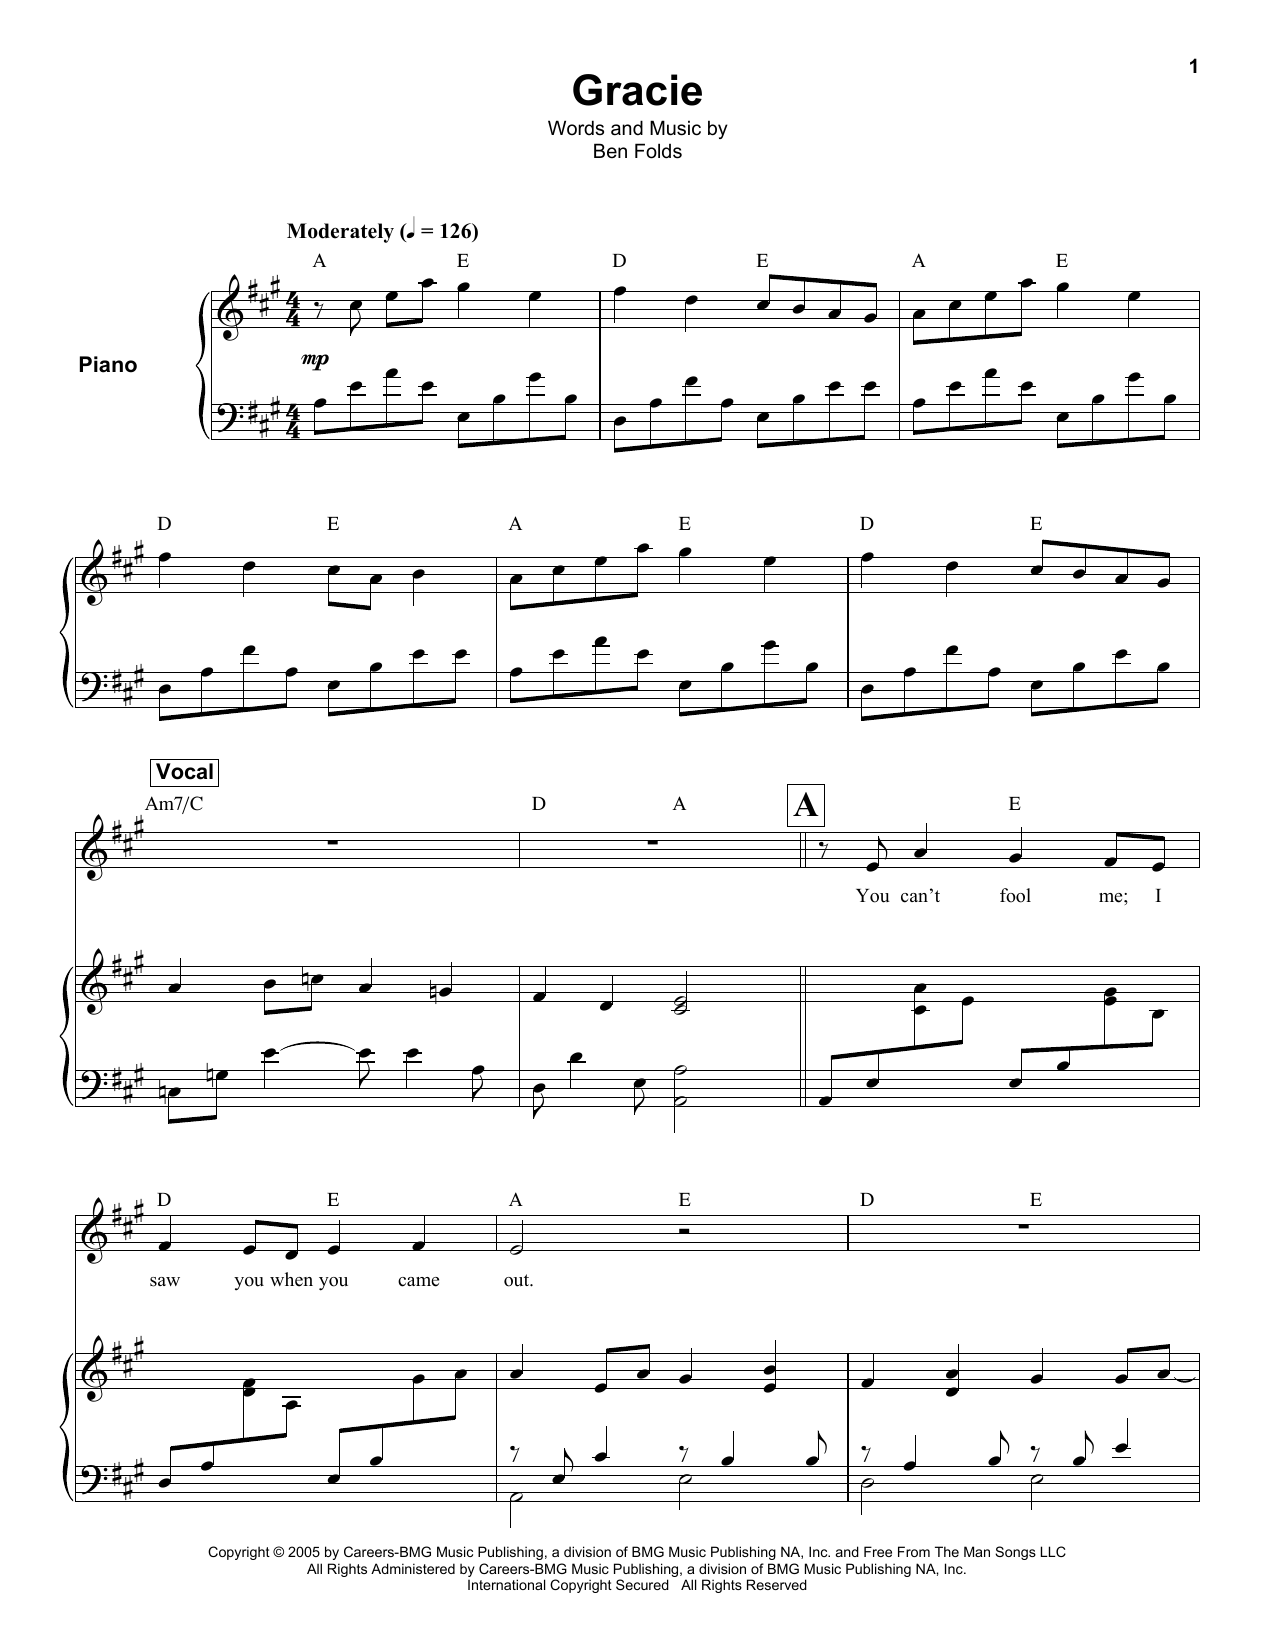 Ben Folds Gracie sheet music notes and chords. Download Printable PDF.